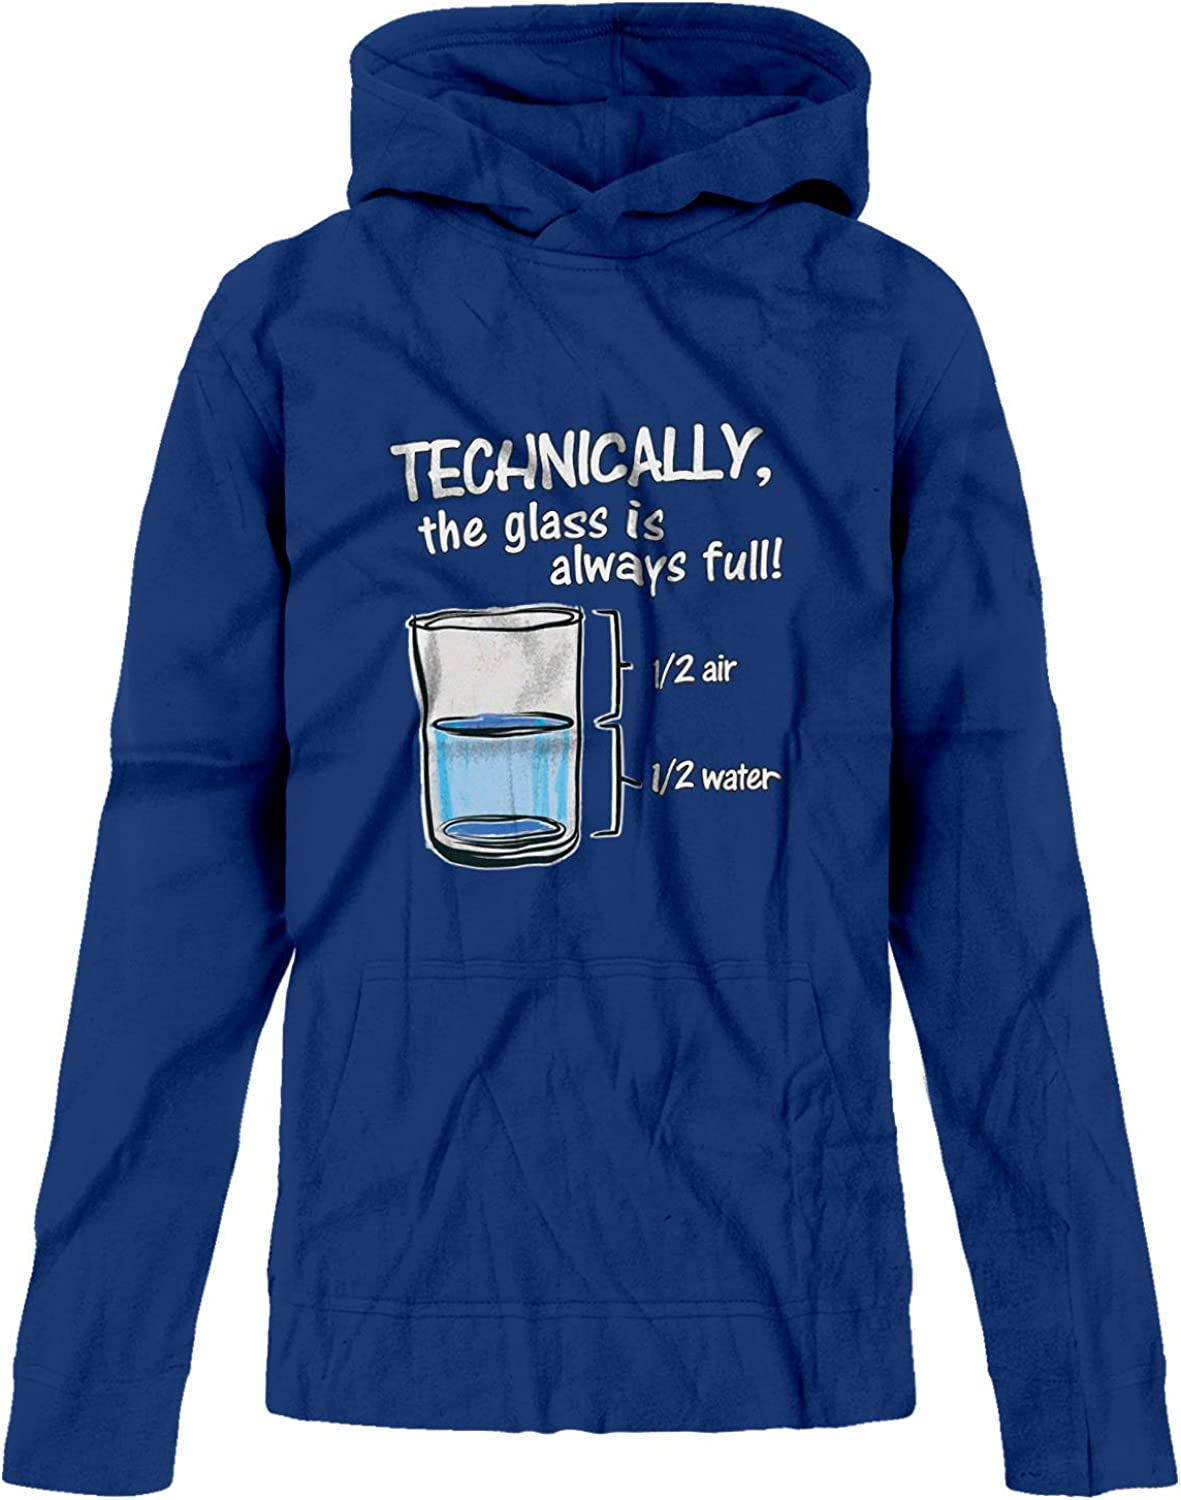 BSW Youth Girls Technically The Glass is Always Full Premium Hoodie